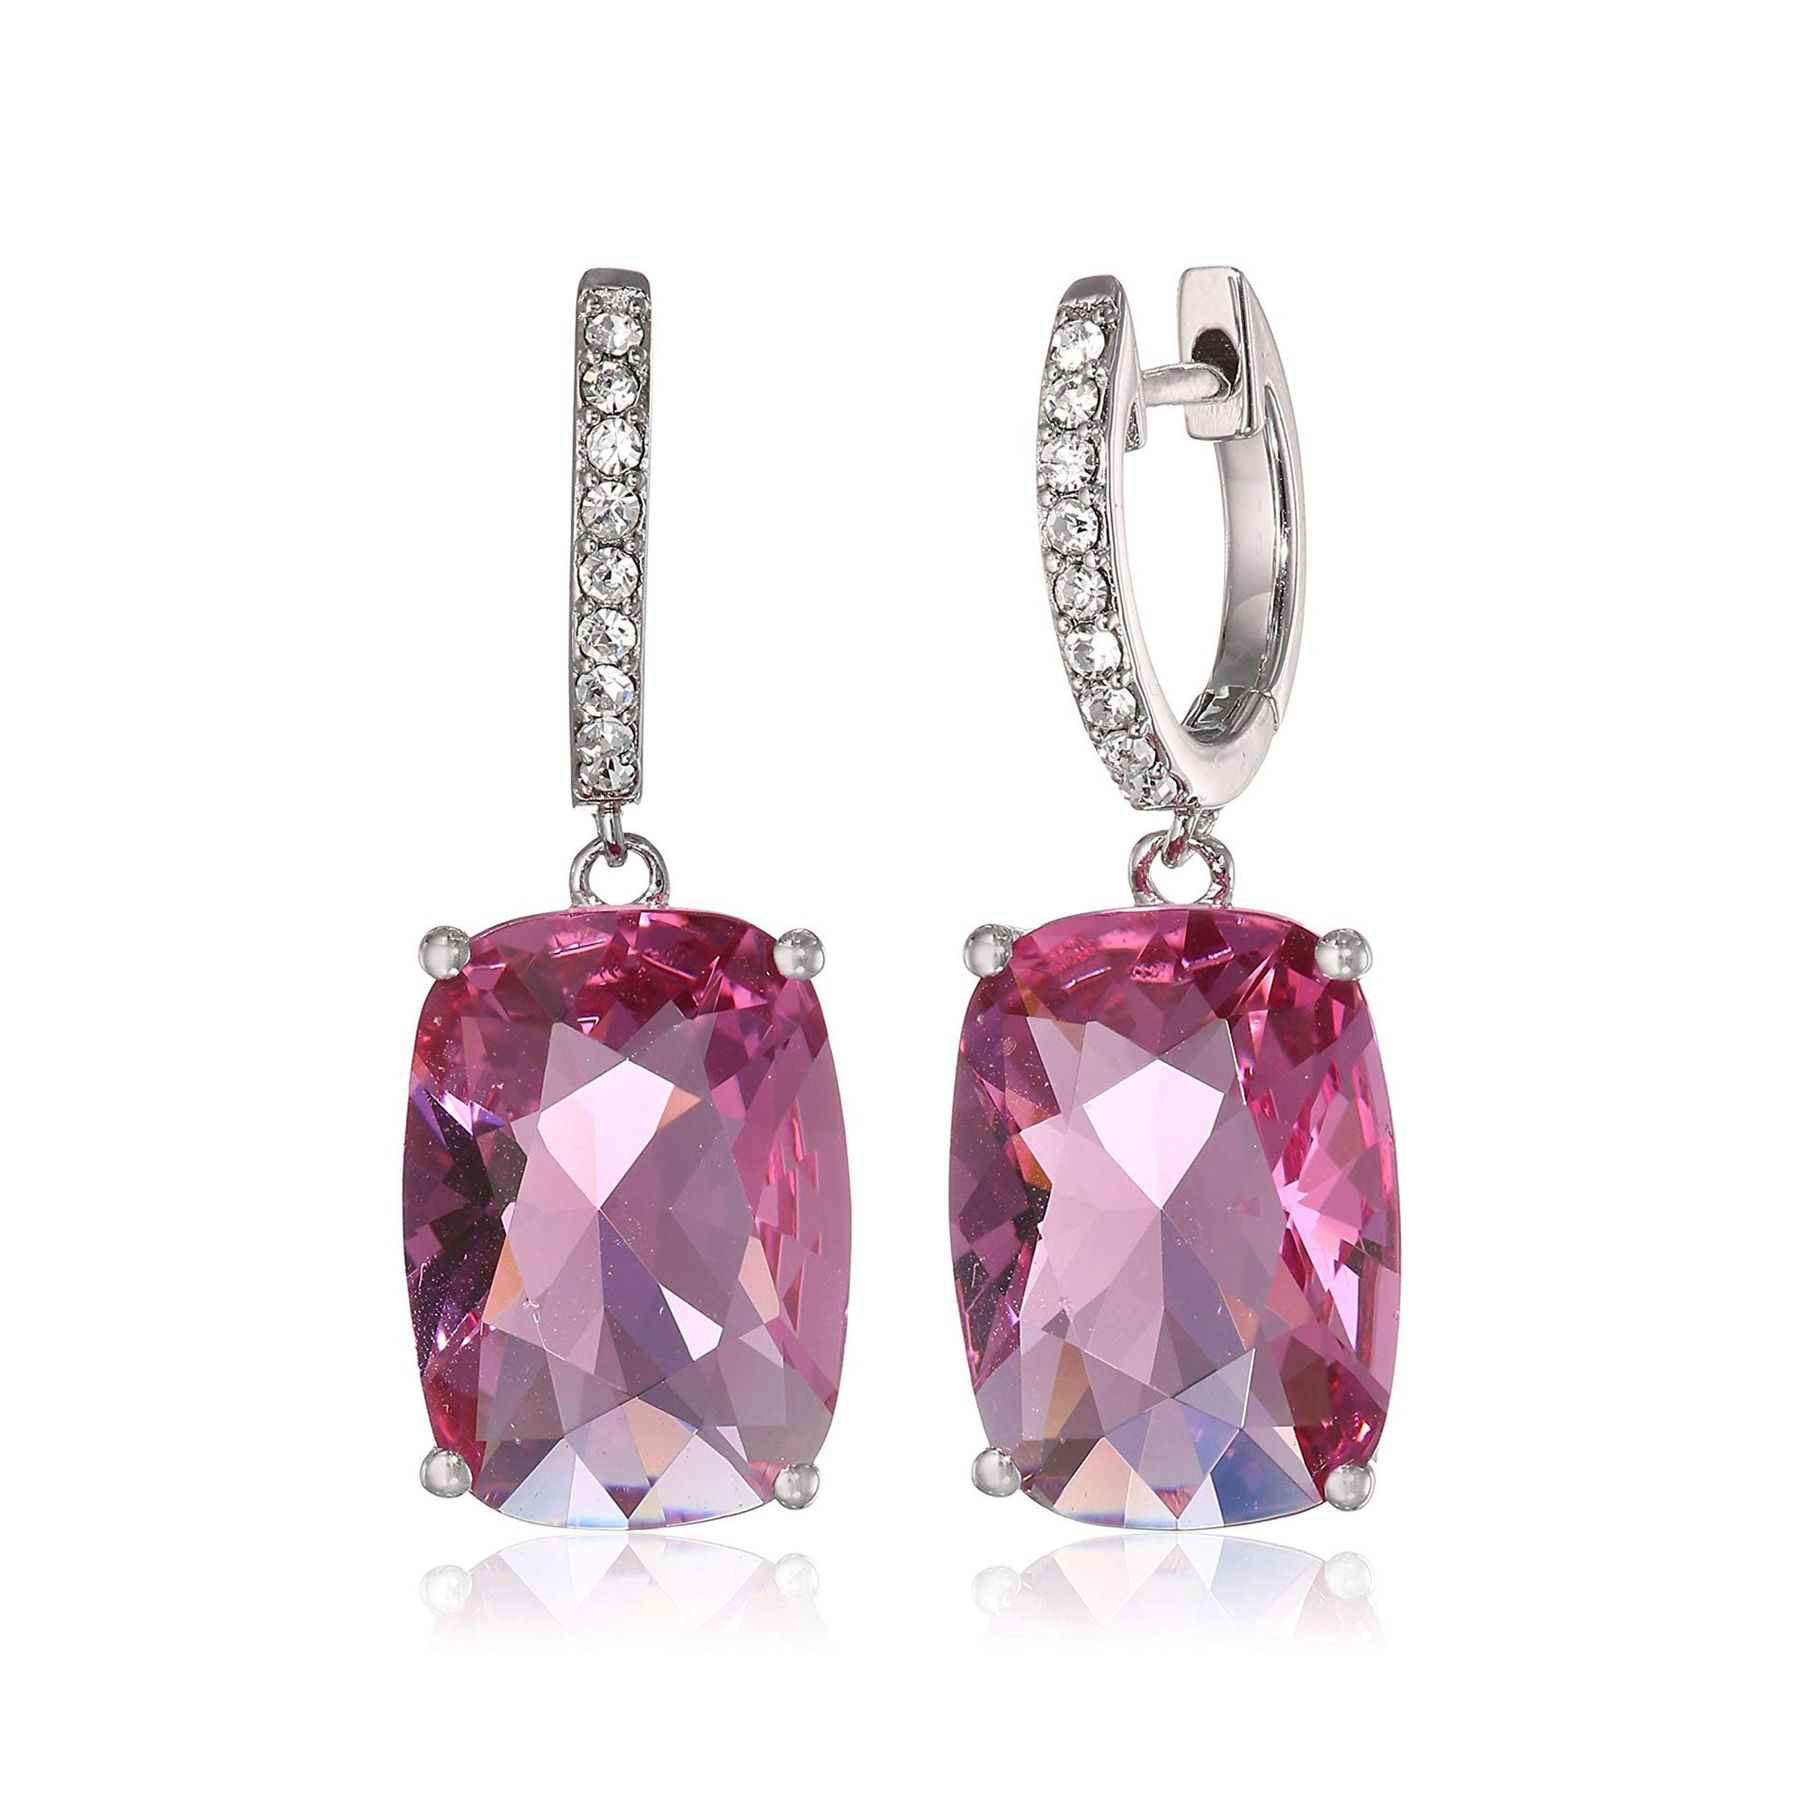 a4e459417028d Crystaluxe Pink Cushion Drop Earrings with Swarovski Crystals in Sterling  Silver